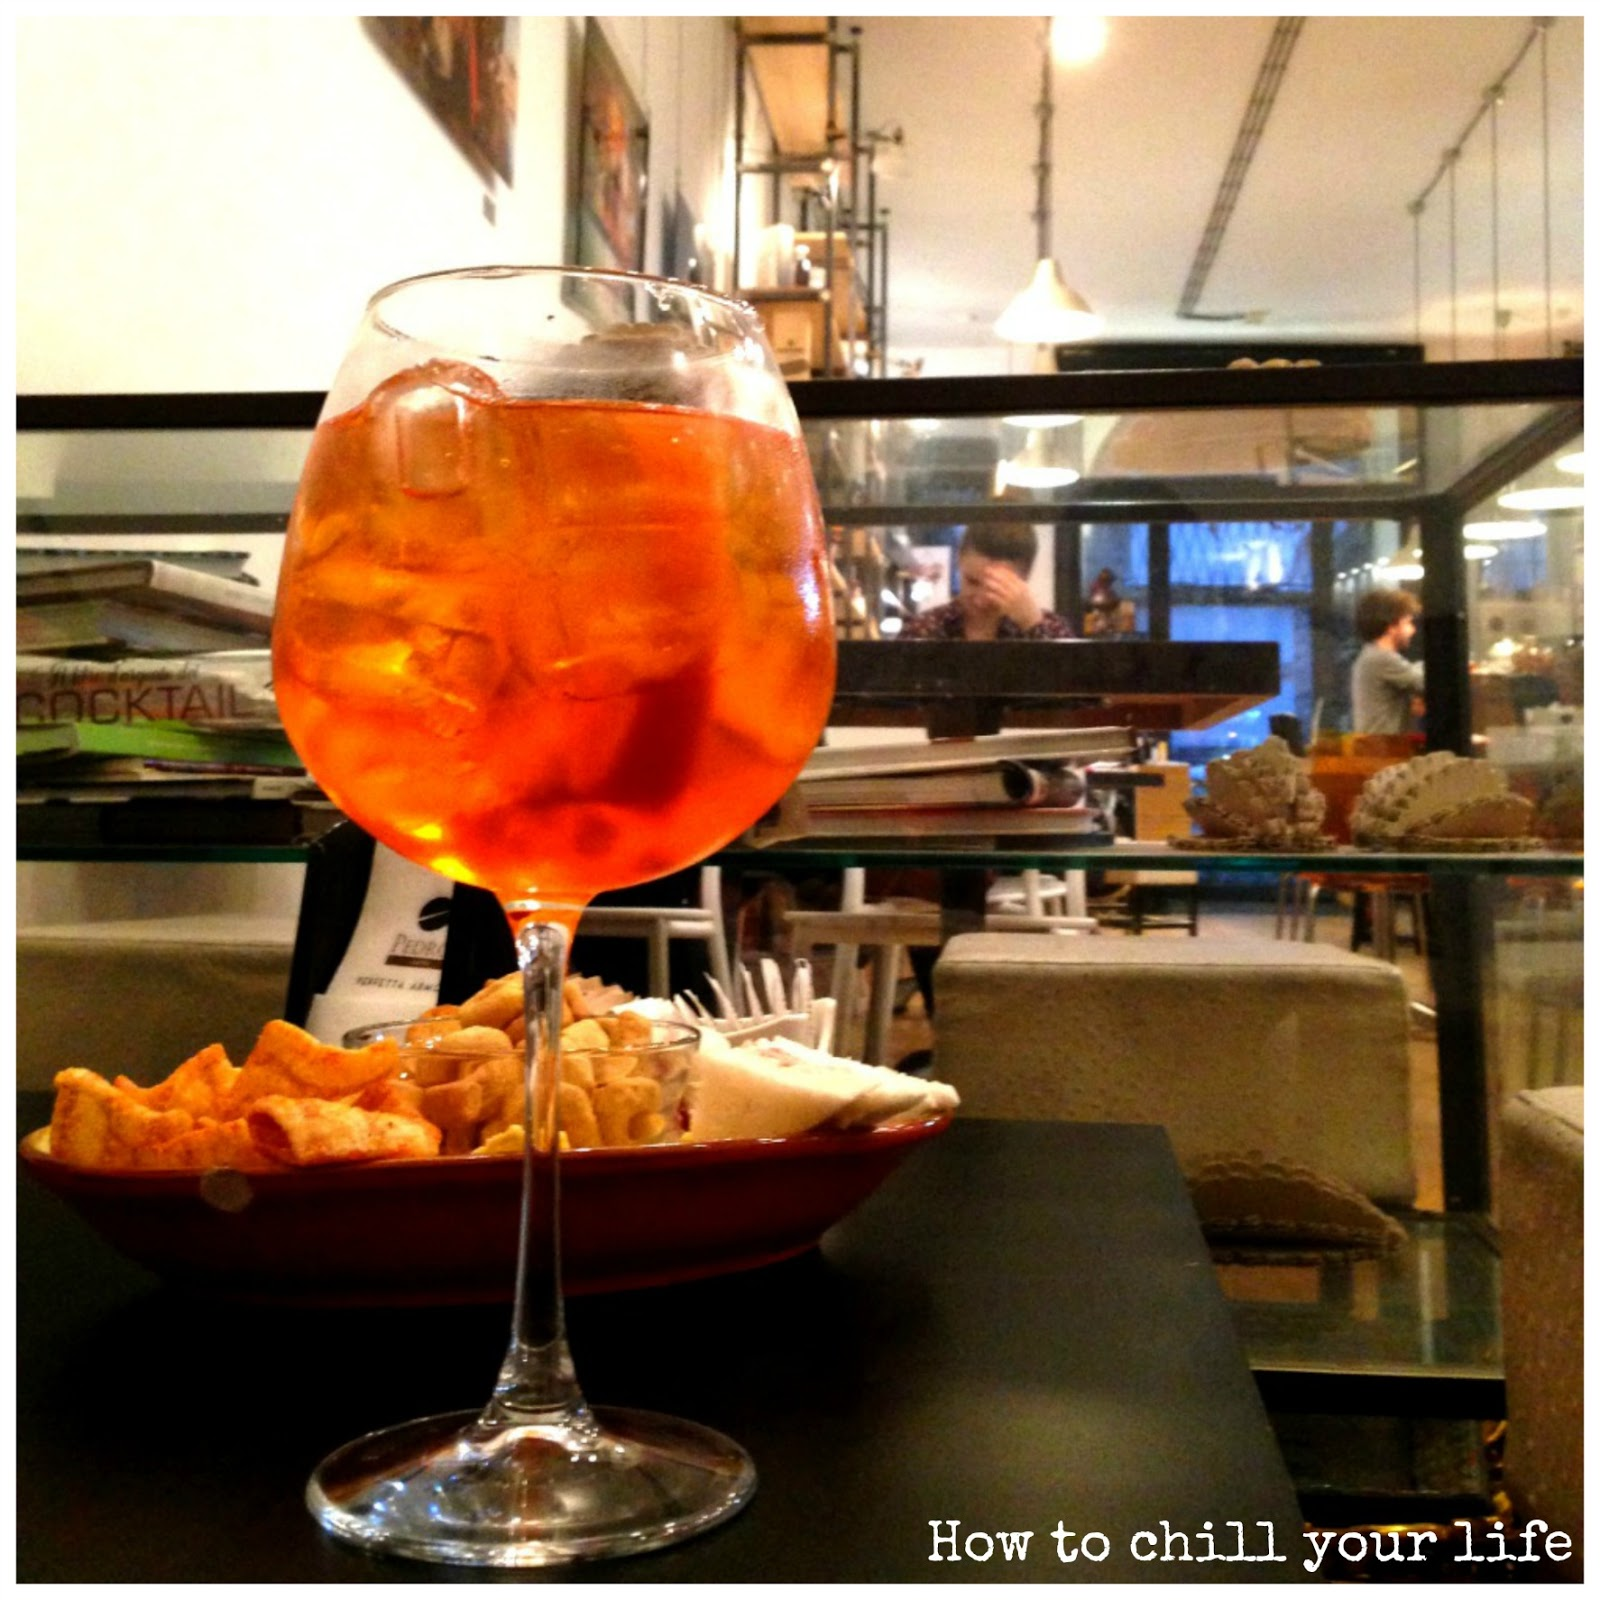 Zu Besuch in Verona - Bar meets Café meets Art | How to chill your life